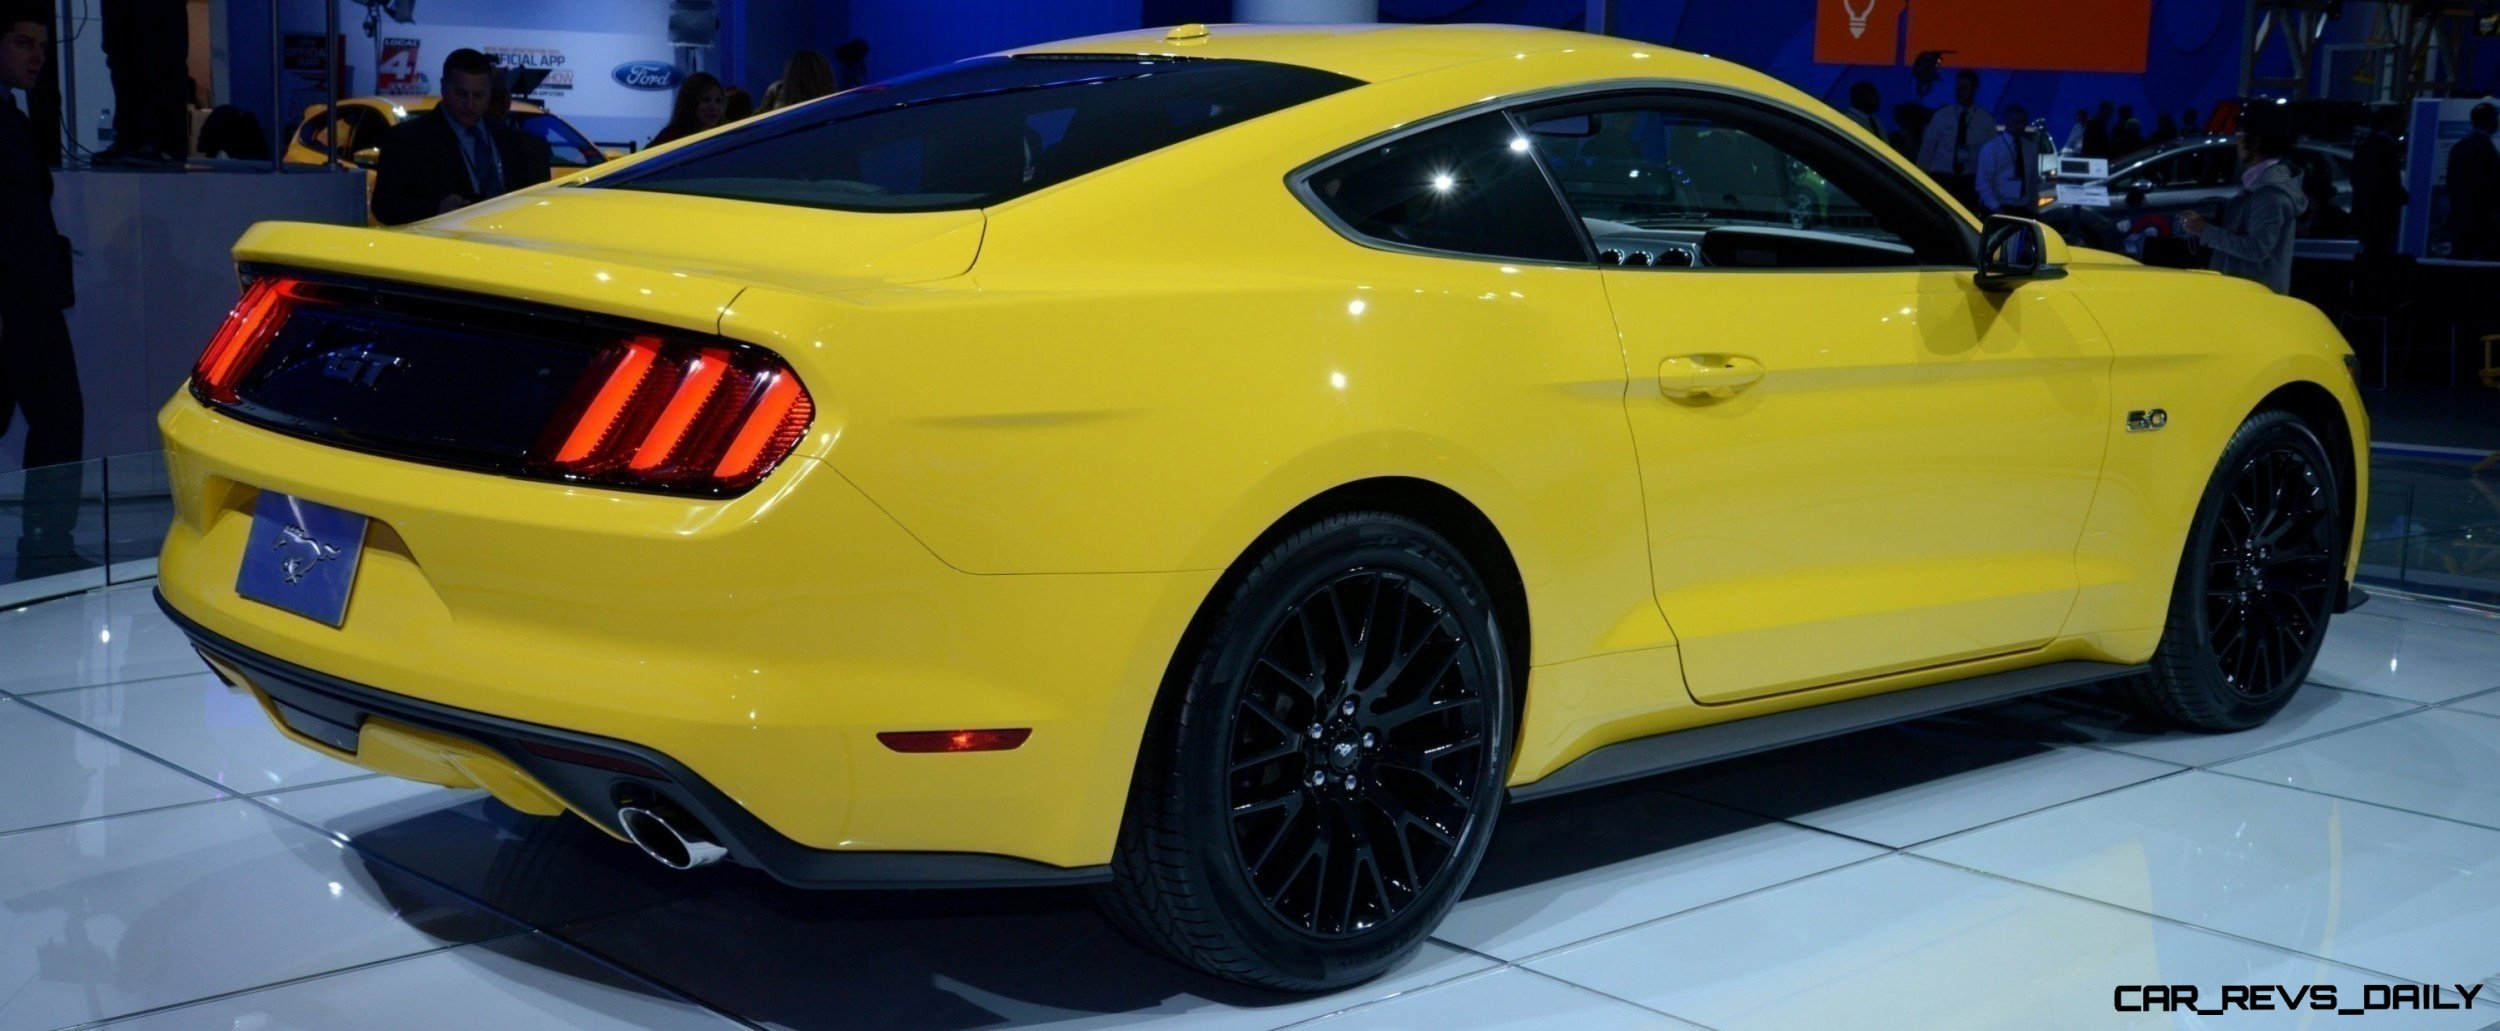 2015 Ford Mustang GT Mean Lean and Ready To Brawl in Latest Real Life Photos Yellow GT 161 photo